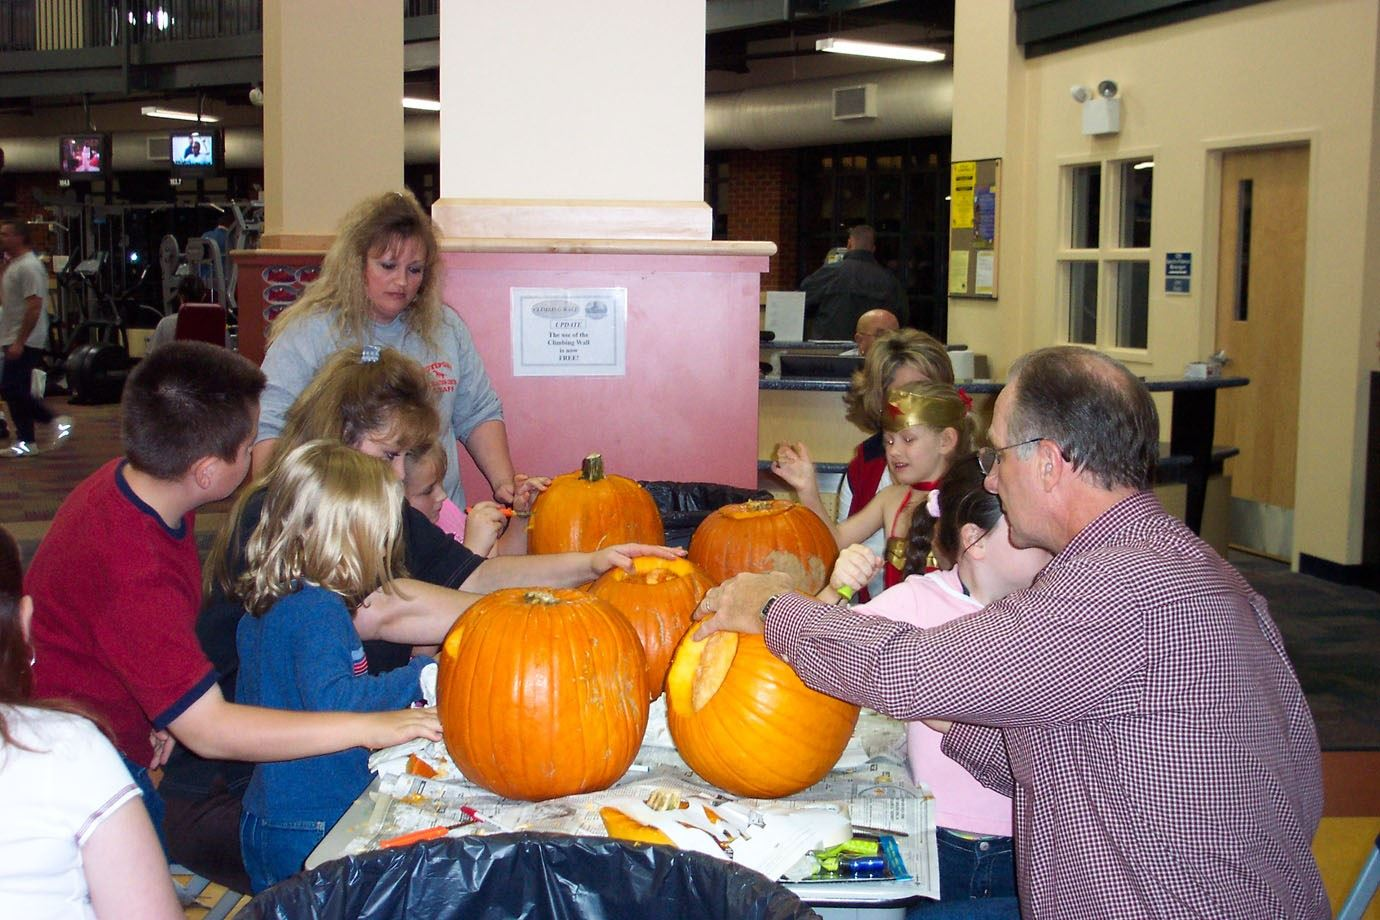 Adults and kids carving pumpkins together.